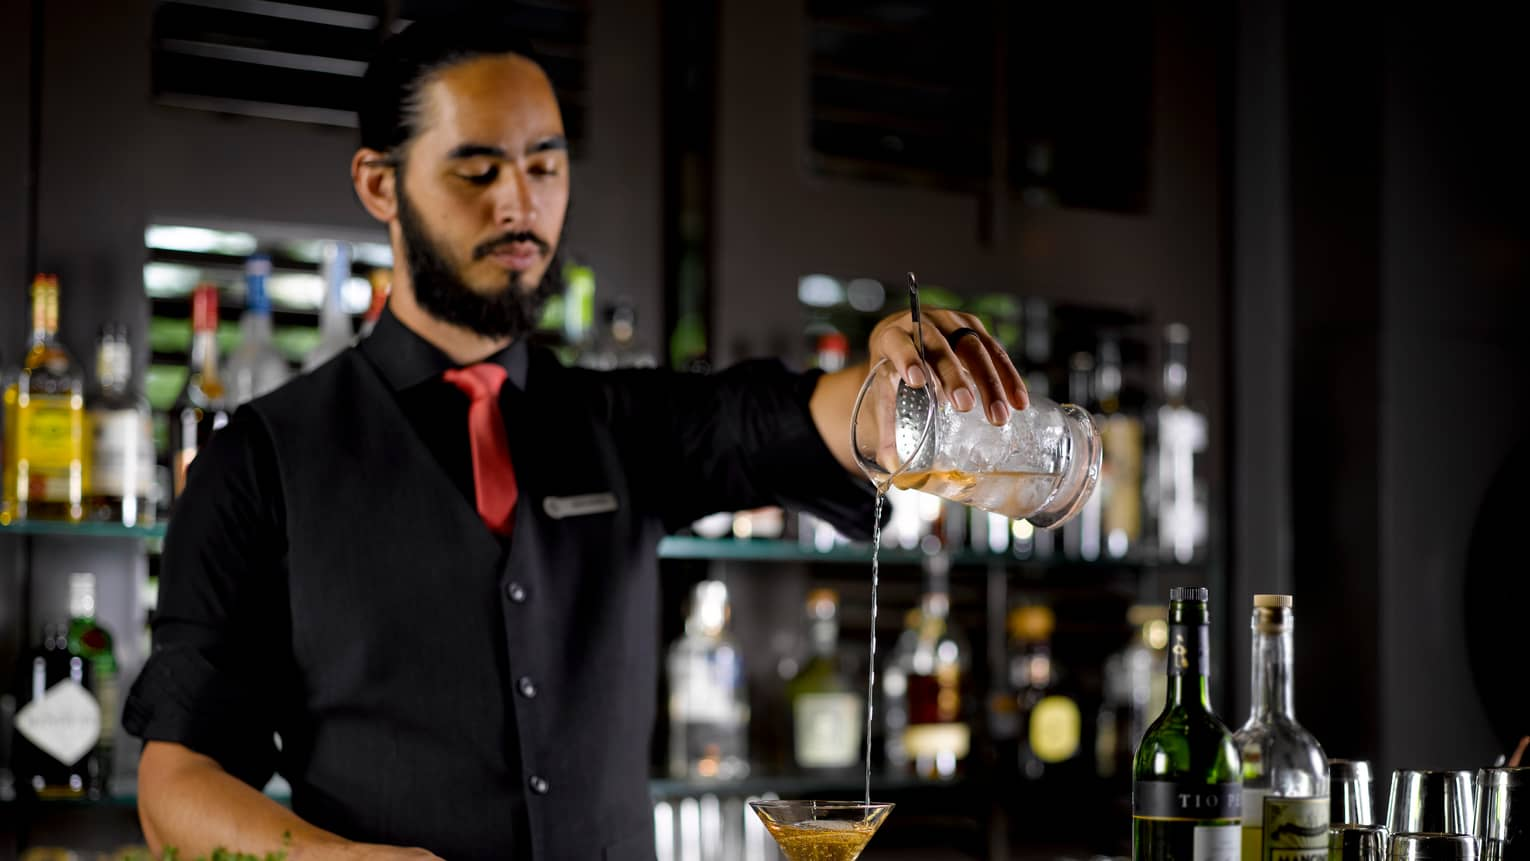 Bartender in vest, tie pours cocktail from shaker into martini glass at bar